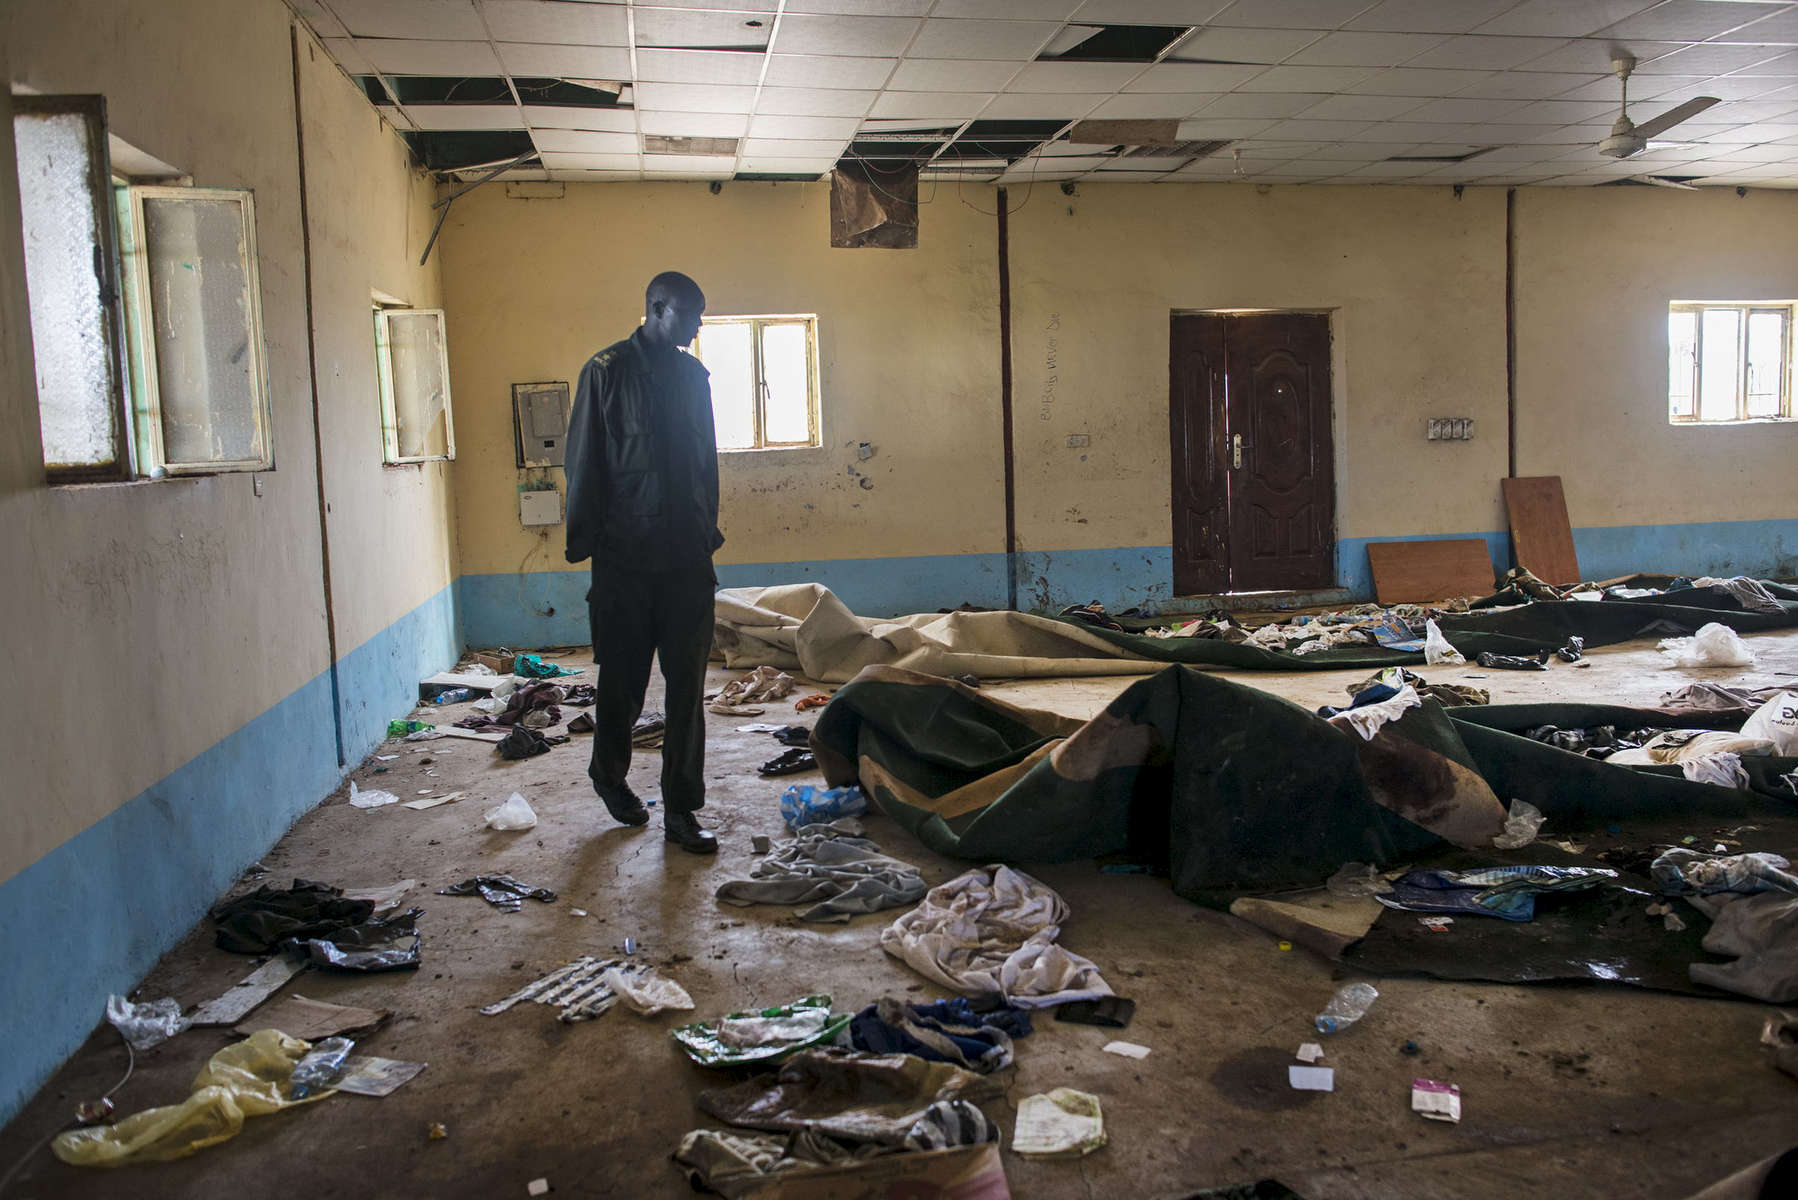 A Nu'er soldier with opposition forces walks through the remnants of clothing, trash, pages for the Koran, and blood left by the massacre at the Kali-Ballee mosque in Bentiu, where hundreds were executed while taking refuge from heavy fighting between government and incoming opposition troops on April 15, 2014 in Bentiu, South Sudan, May 3, 2014.  The scene at the mosque in Bentiu was one of several masacres noted in the recent United nations report documenting human rights atrocities by both the government and opposition forces across South Sudan, where people were routinely killed based on their ethnicity. Over twenty-thousand internally displaced people live at the UNMISS base in Bentiu, and one million Southern Sudanese have been displaced from their homes as the civil war rages in the country, pitting ethnic Nu'er against Dinka.  (Credit: Lynsey Addario)